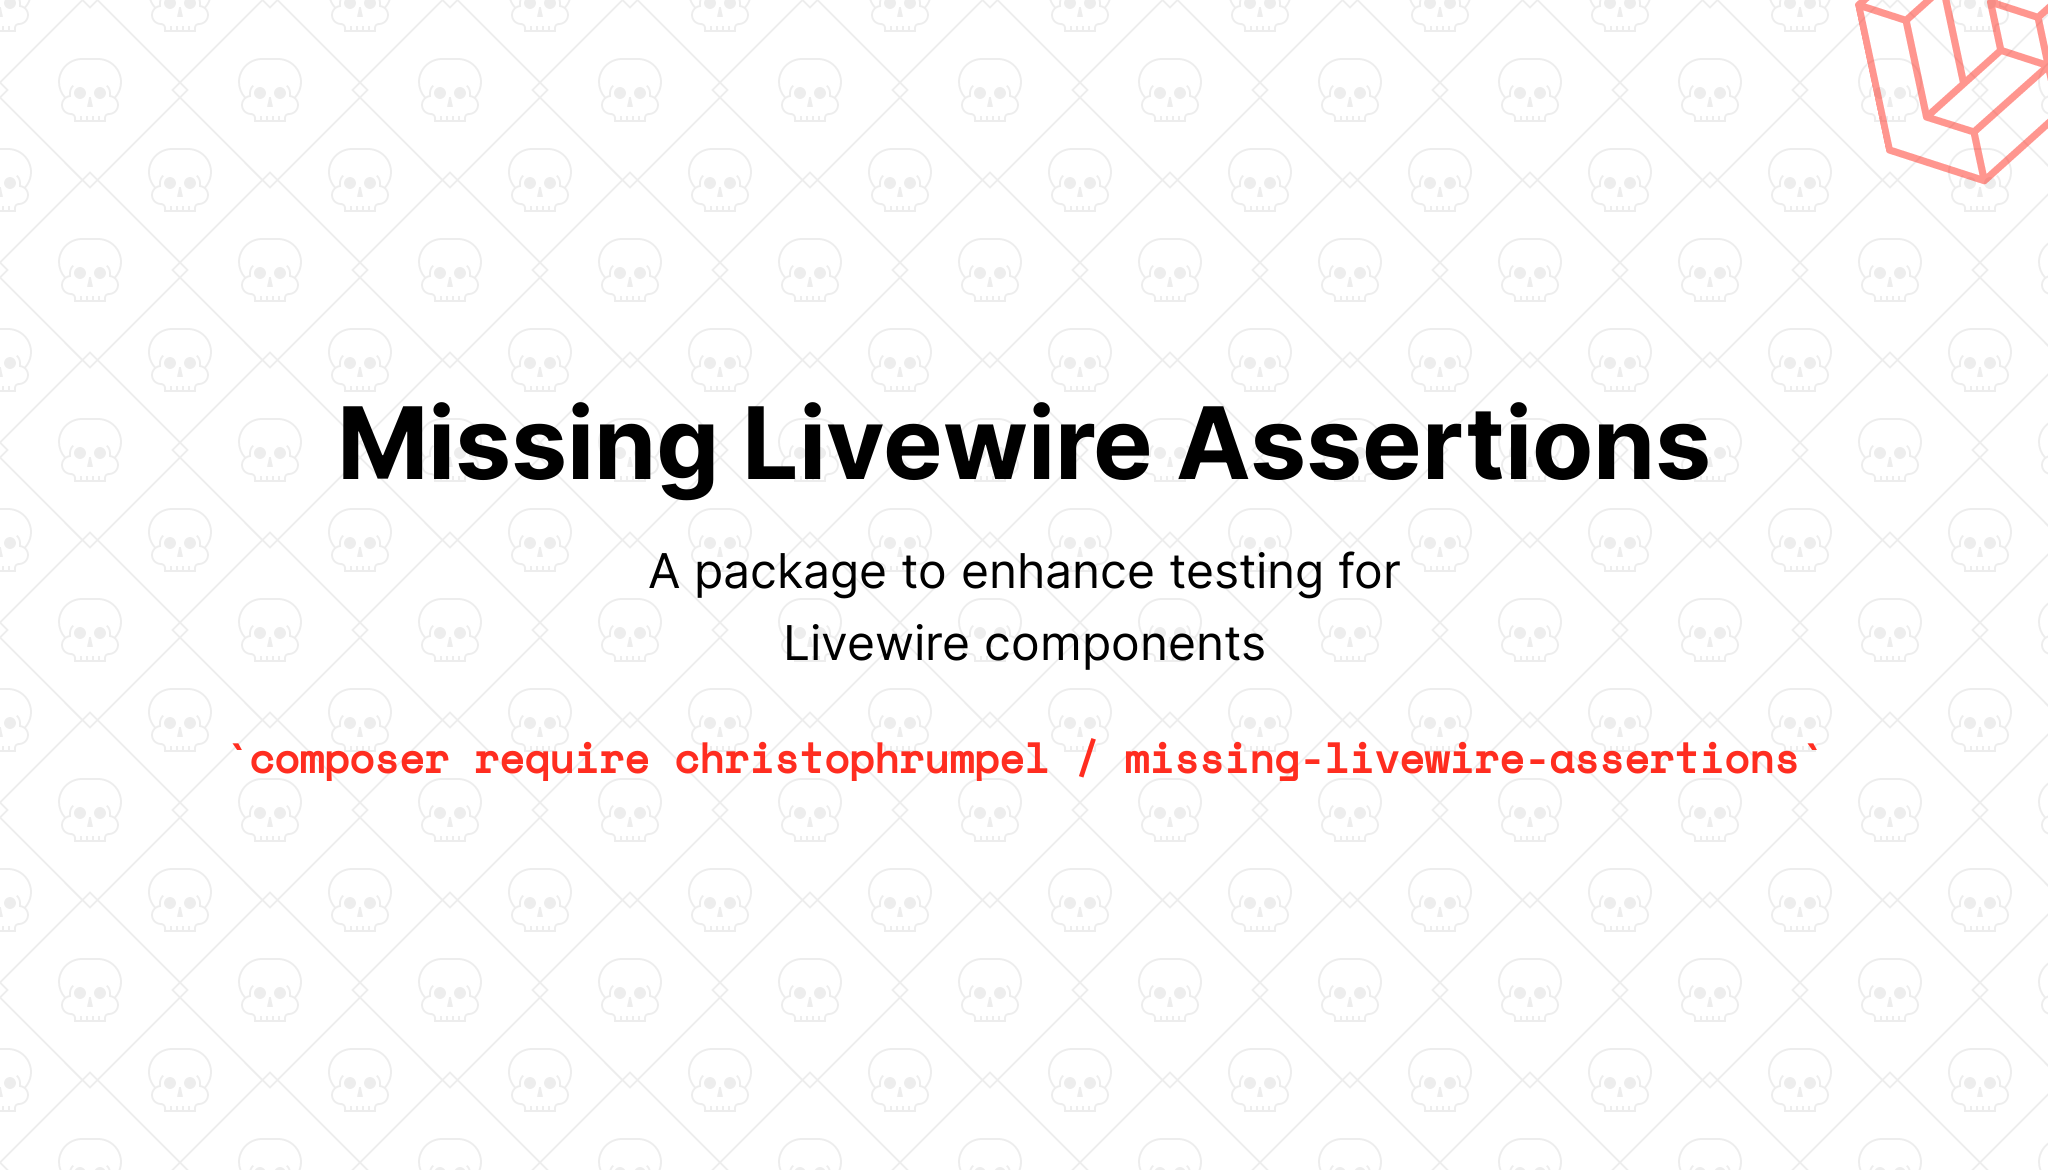 Missing Livewire Assertions - Package Image